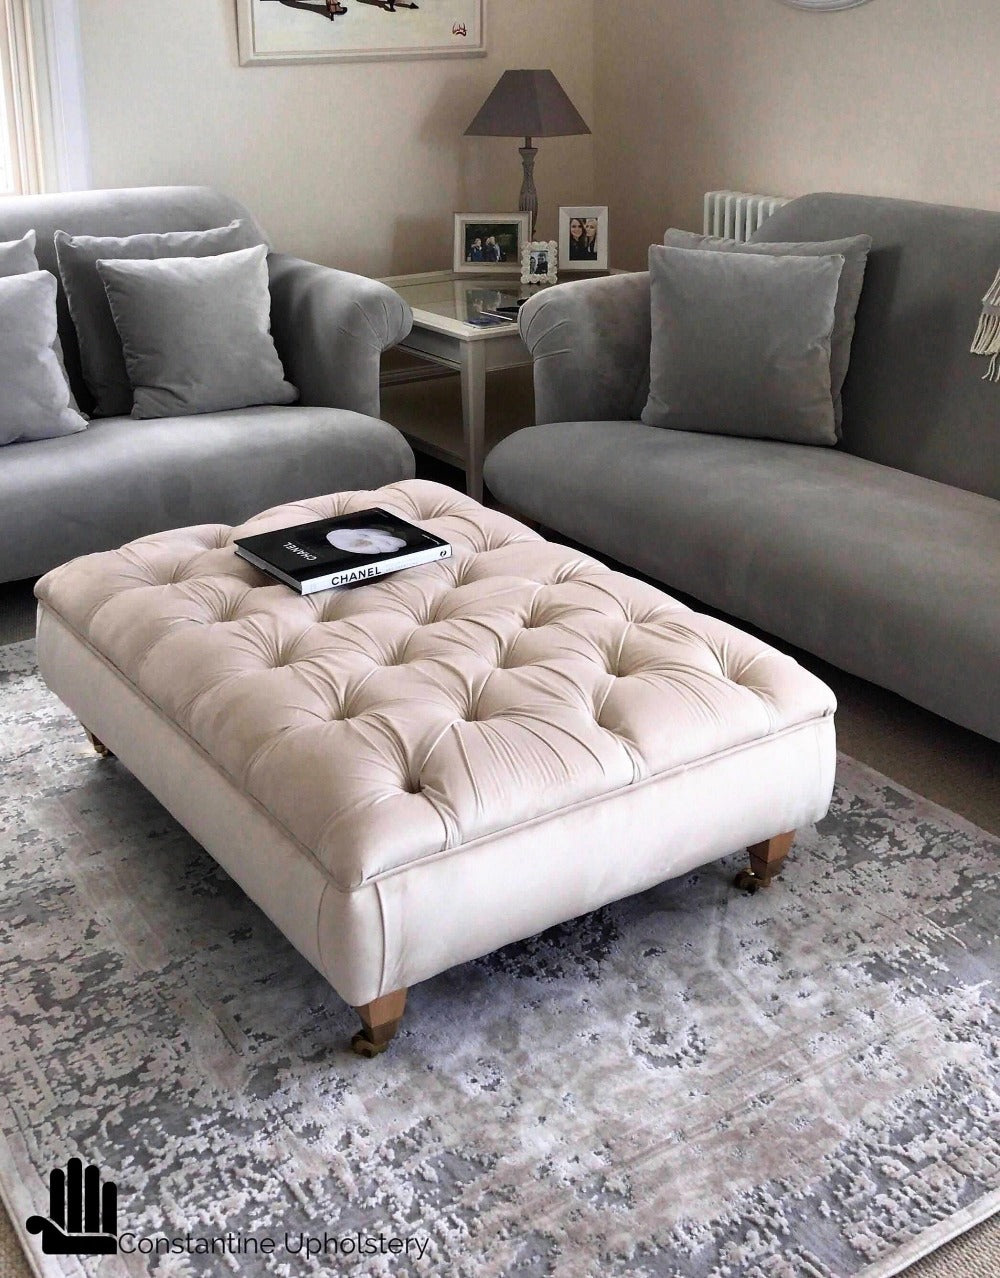 Chesterfield Footstool For Sale Deep Buttoned Footstool